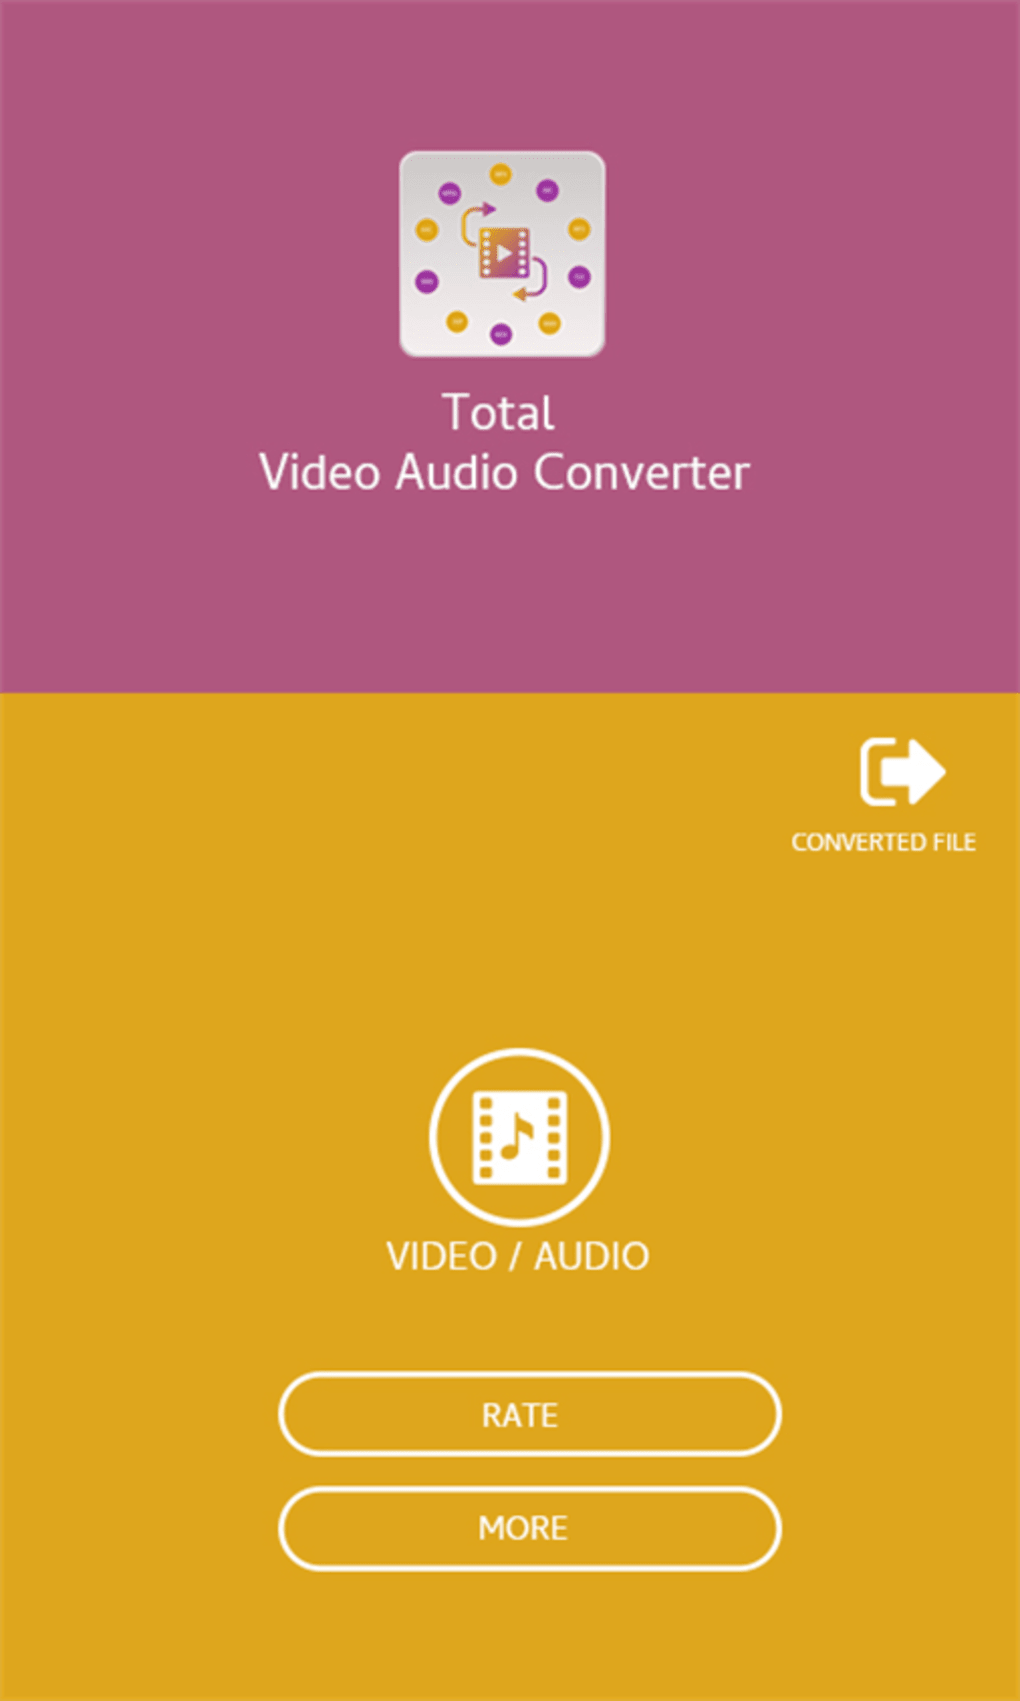 Total Video Audio Converter - Download